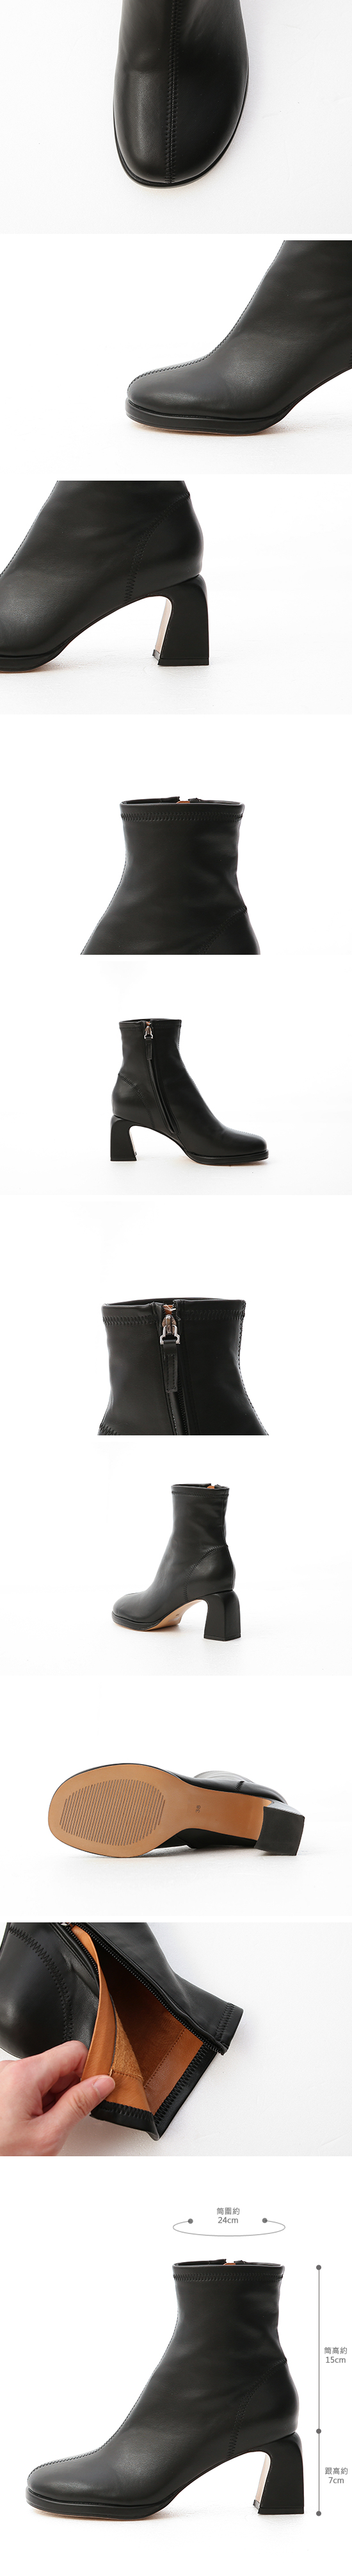 Round Toe Curved Heel Boots Black